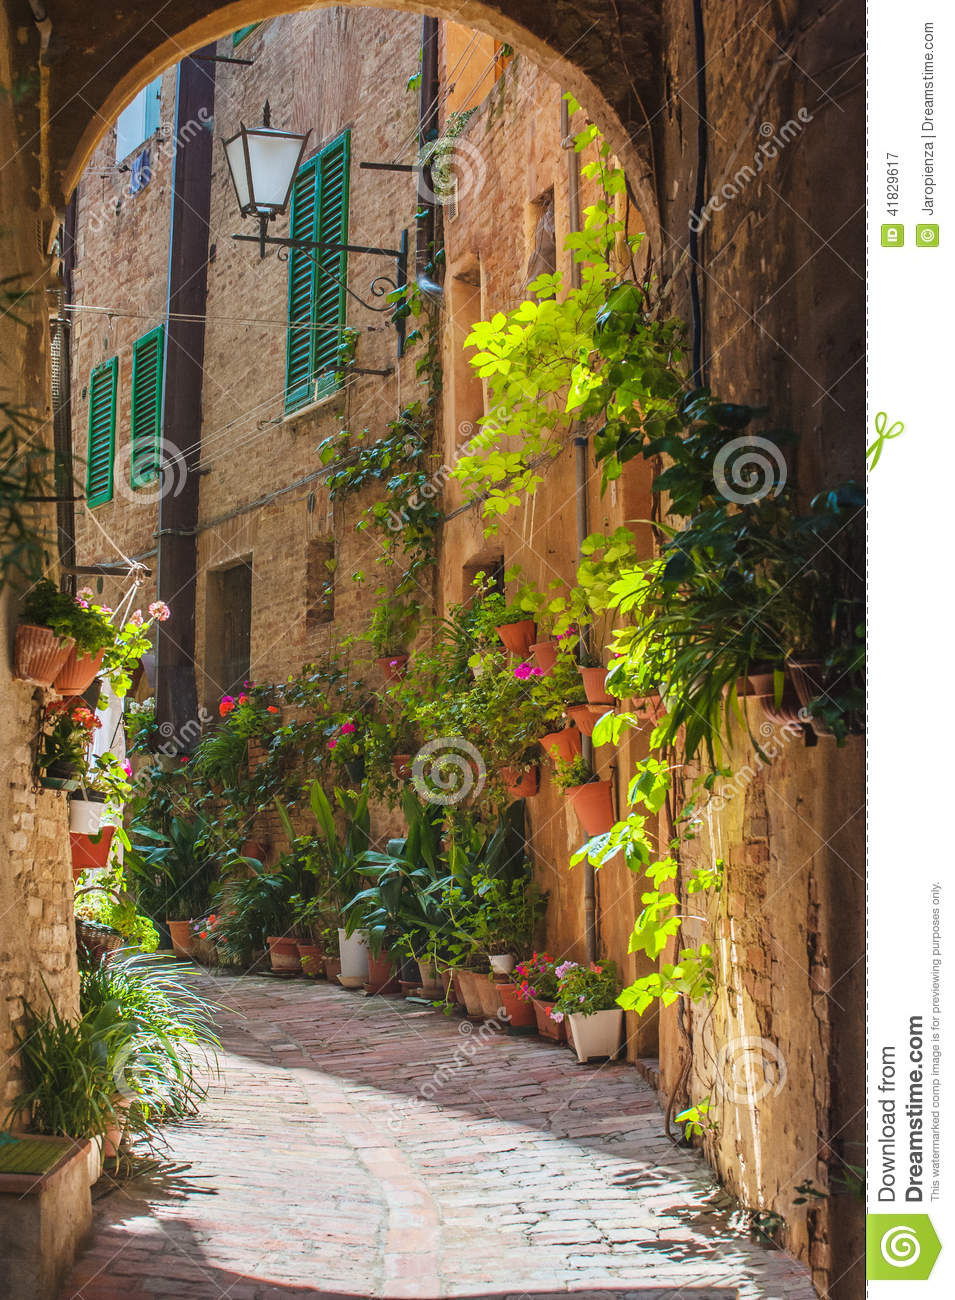 The Streets Of The Old Italian City Of Siena Stock Photo - Image ...